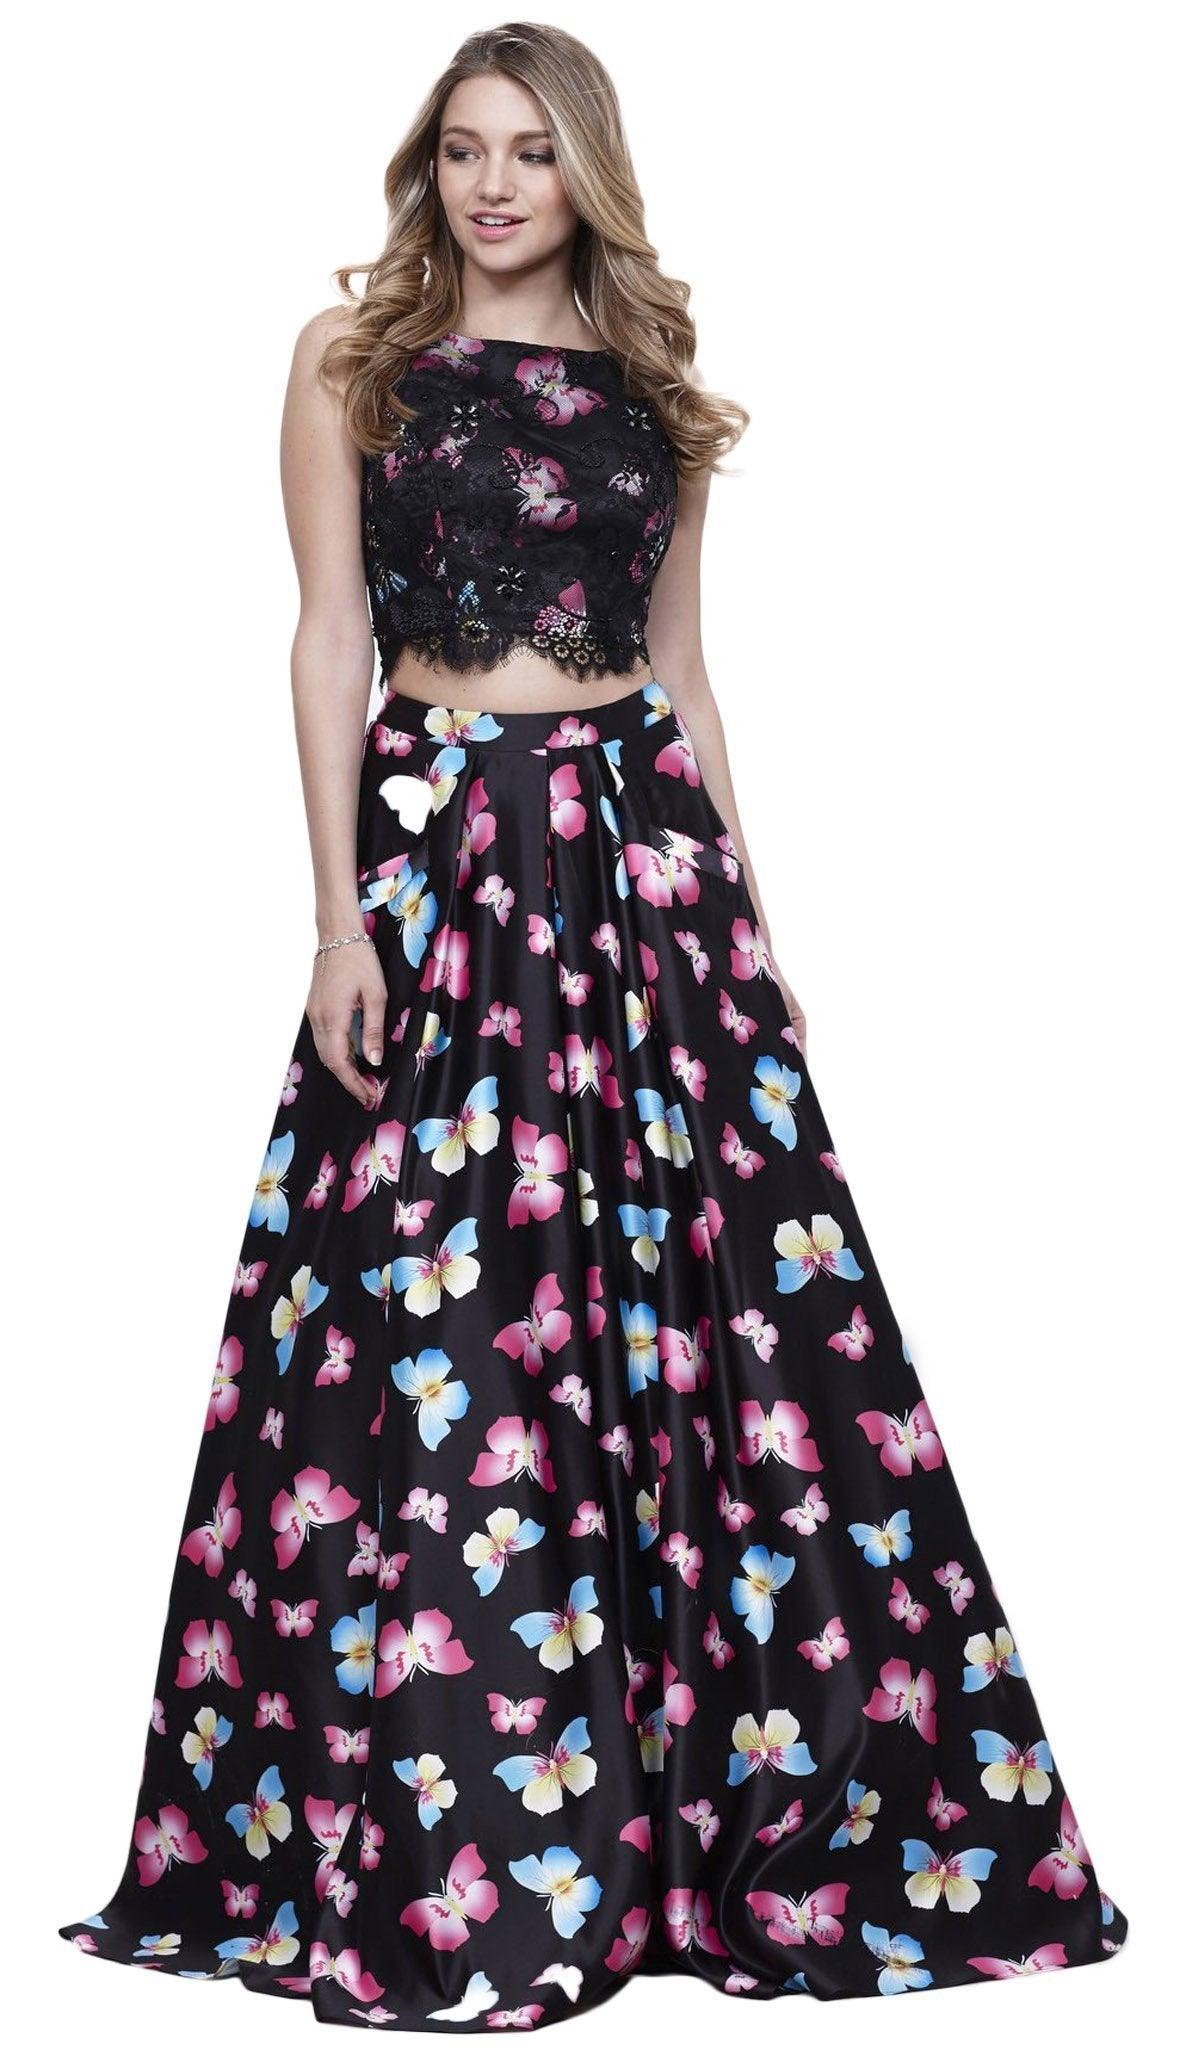 Nox Anabel - Two-Piece Butterfly Printed Evening Gown 8336SC